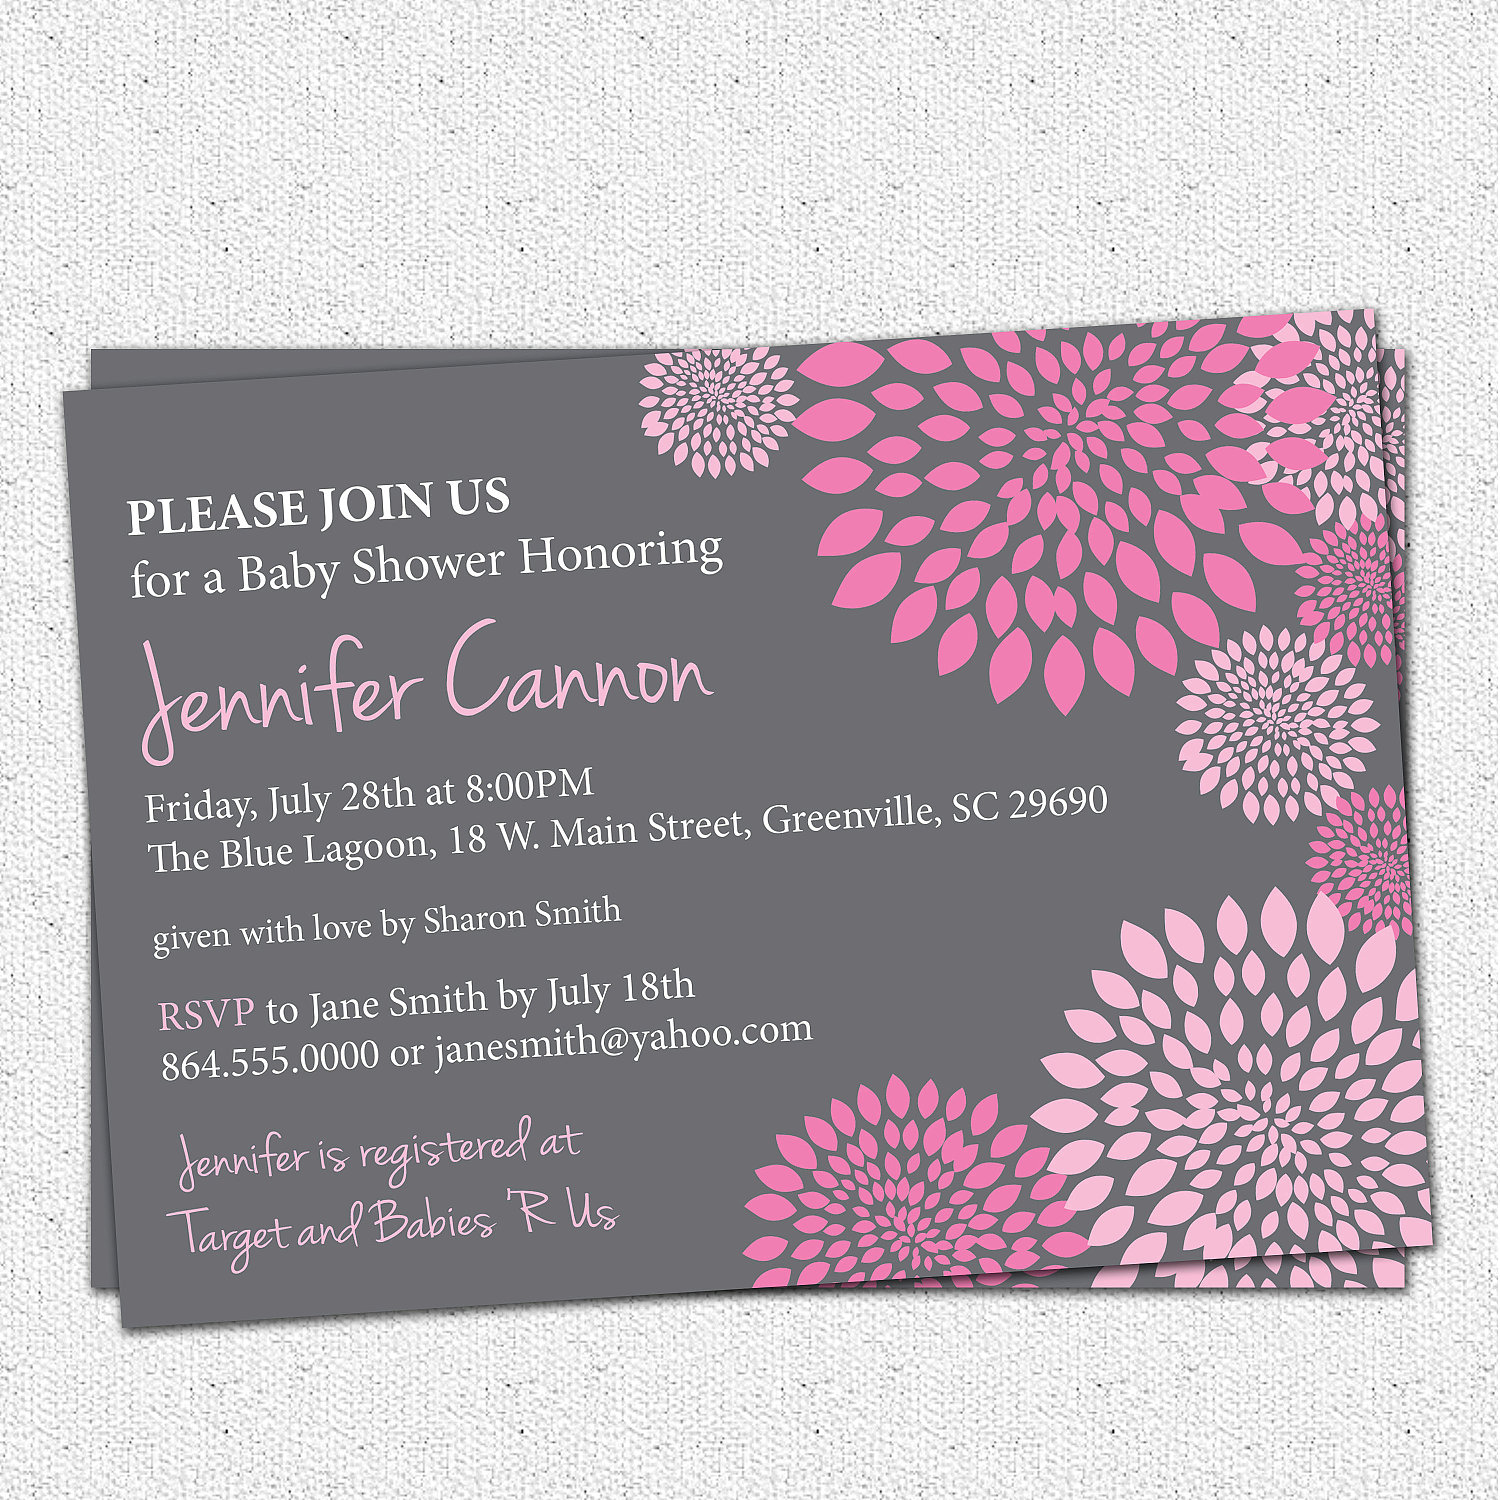 Baby Shower Invitations, Girl Hot and Pale Pink and Charcoal Grey ...